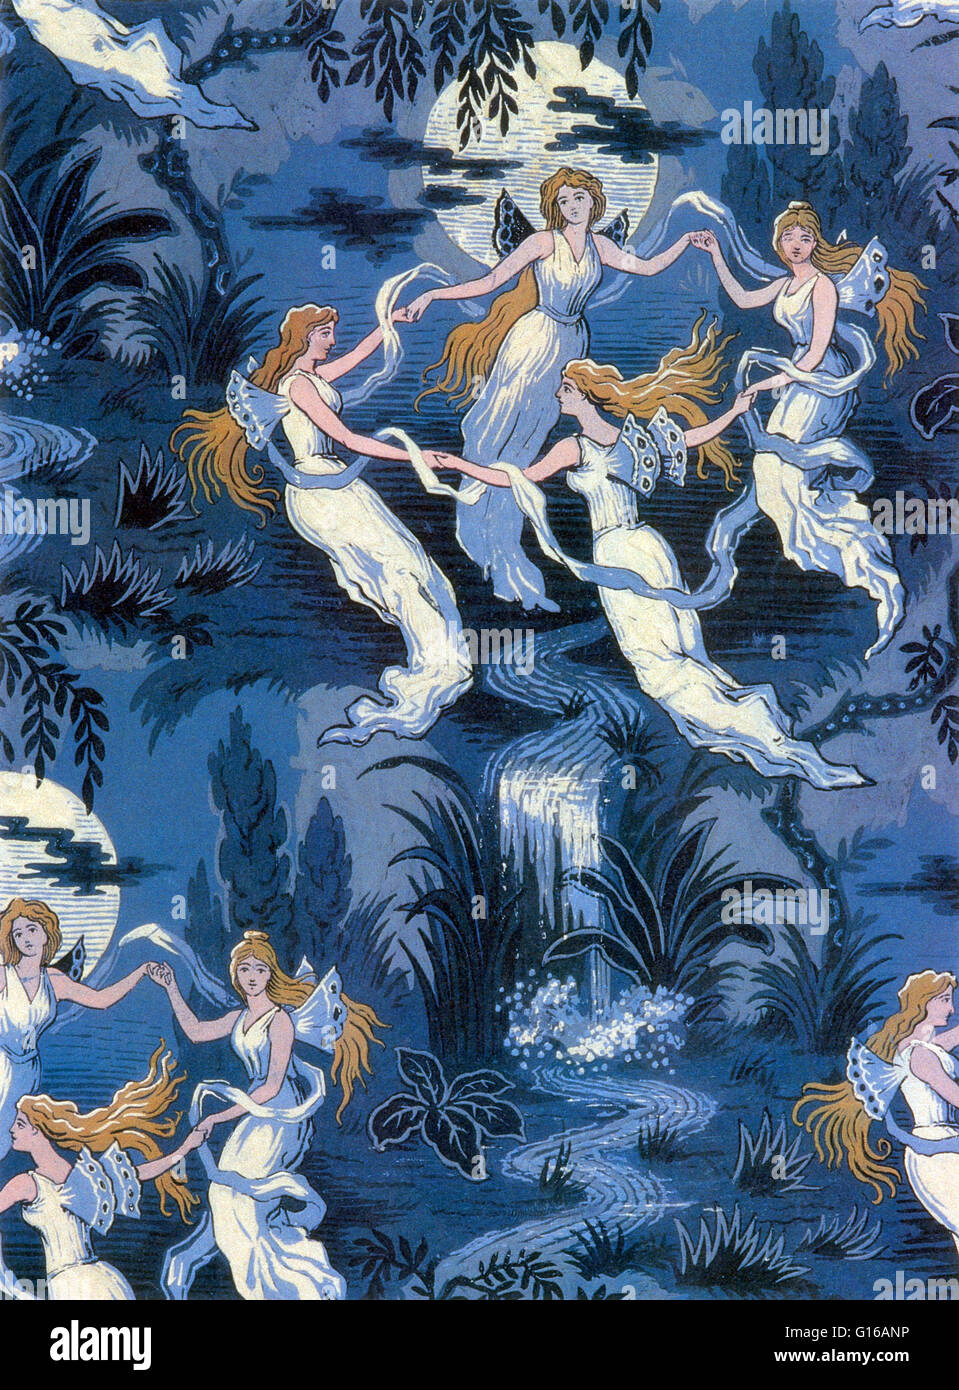 Fairies in the Moonlight, French Textile. A fairy is a type of mythical being or legendary creature in European - Stock Image